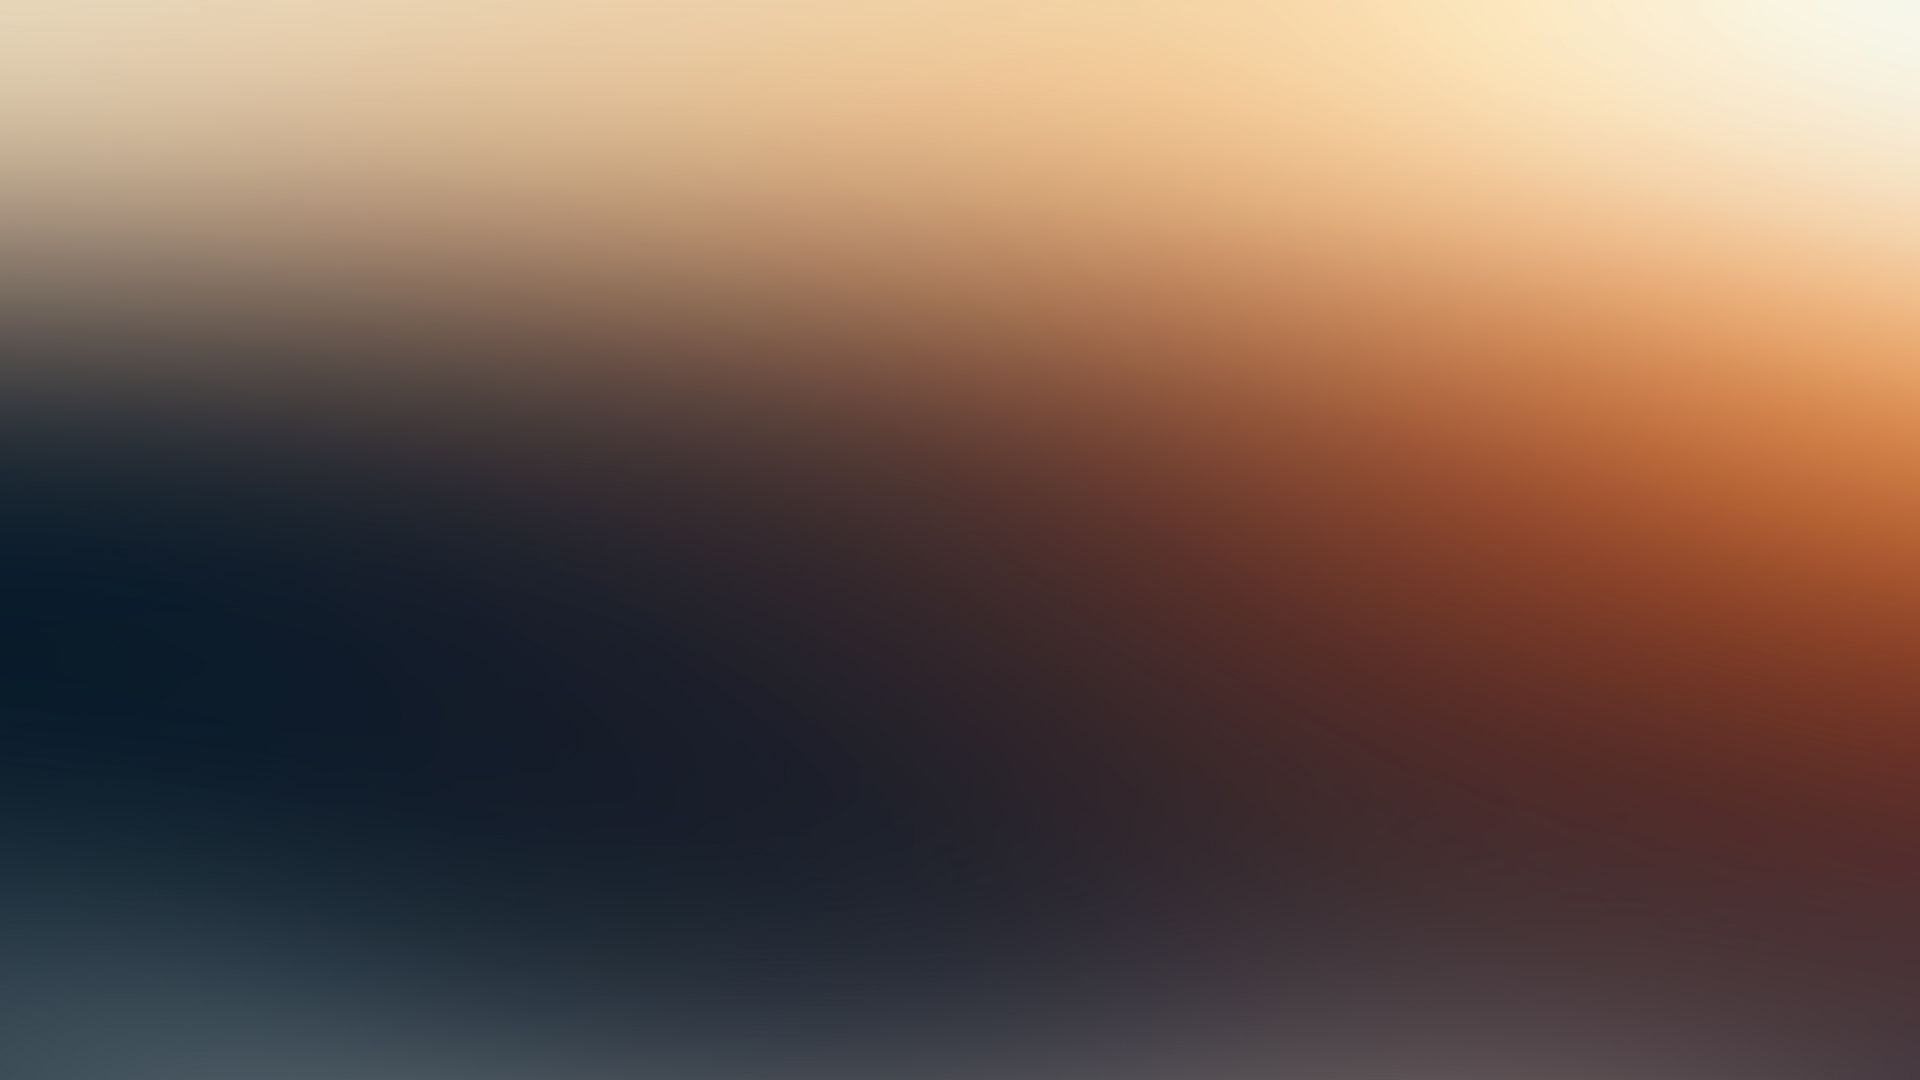 Wallpaper Abstract, blue and orange, gradient, blur